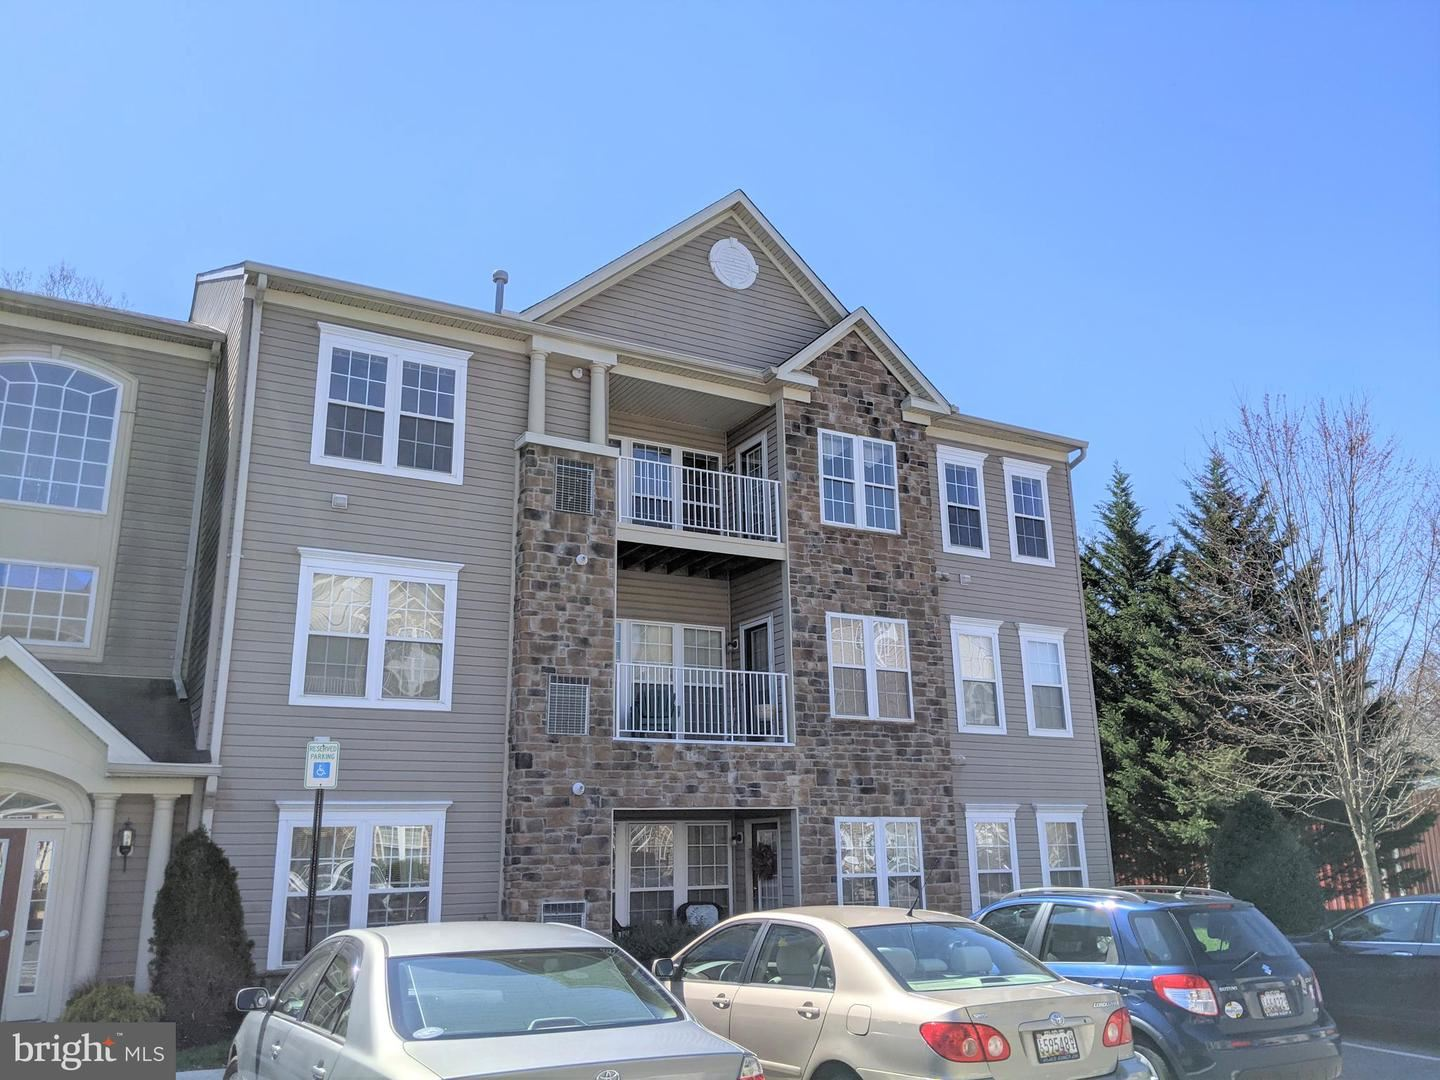 130 BROADWAY #1M, Bel Air, MD 21014 - MLS#: MDHR259130